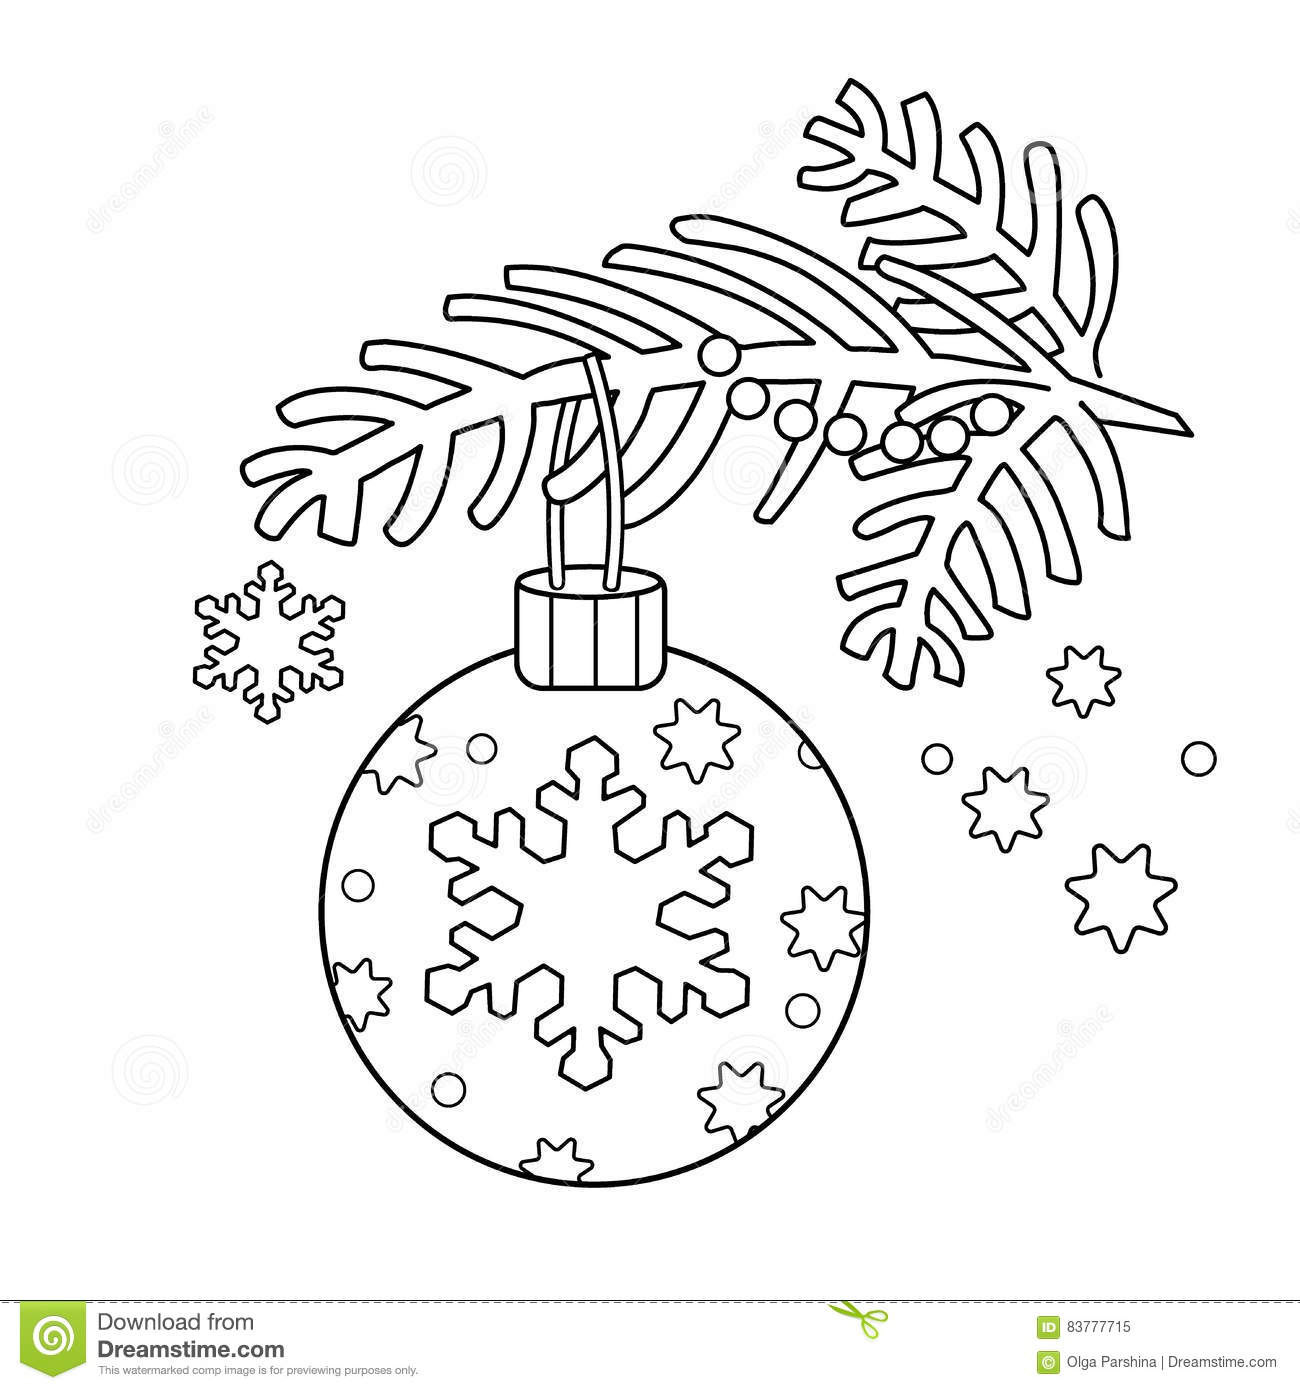 New Year Decorations Auto Electrical Wiring Diagram Daihatsu Cuore Coloring Page Outline Of Christmas Decoration